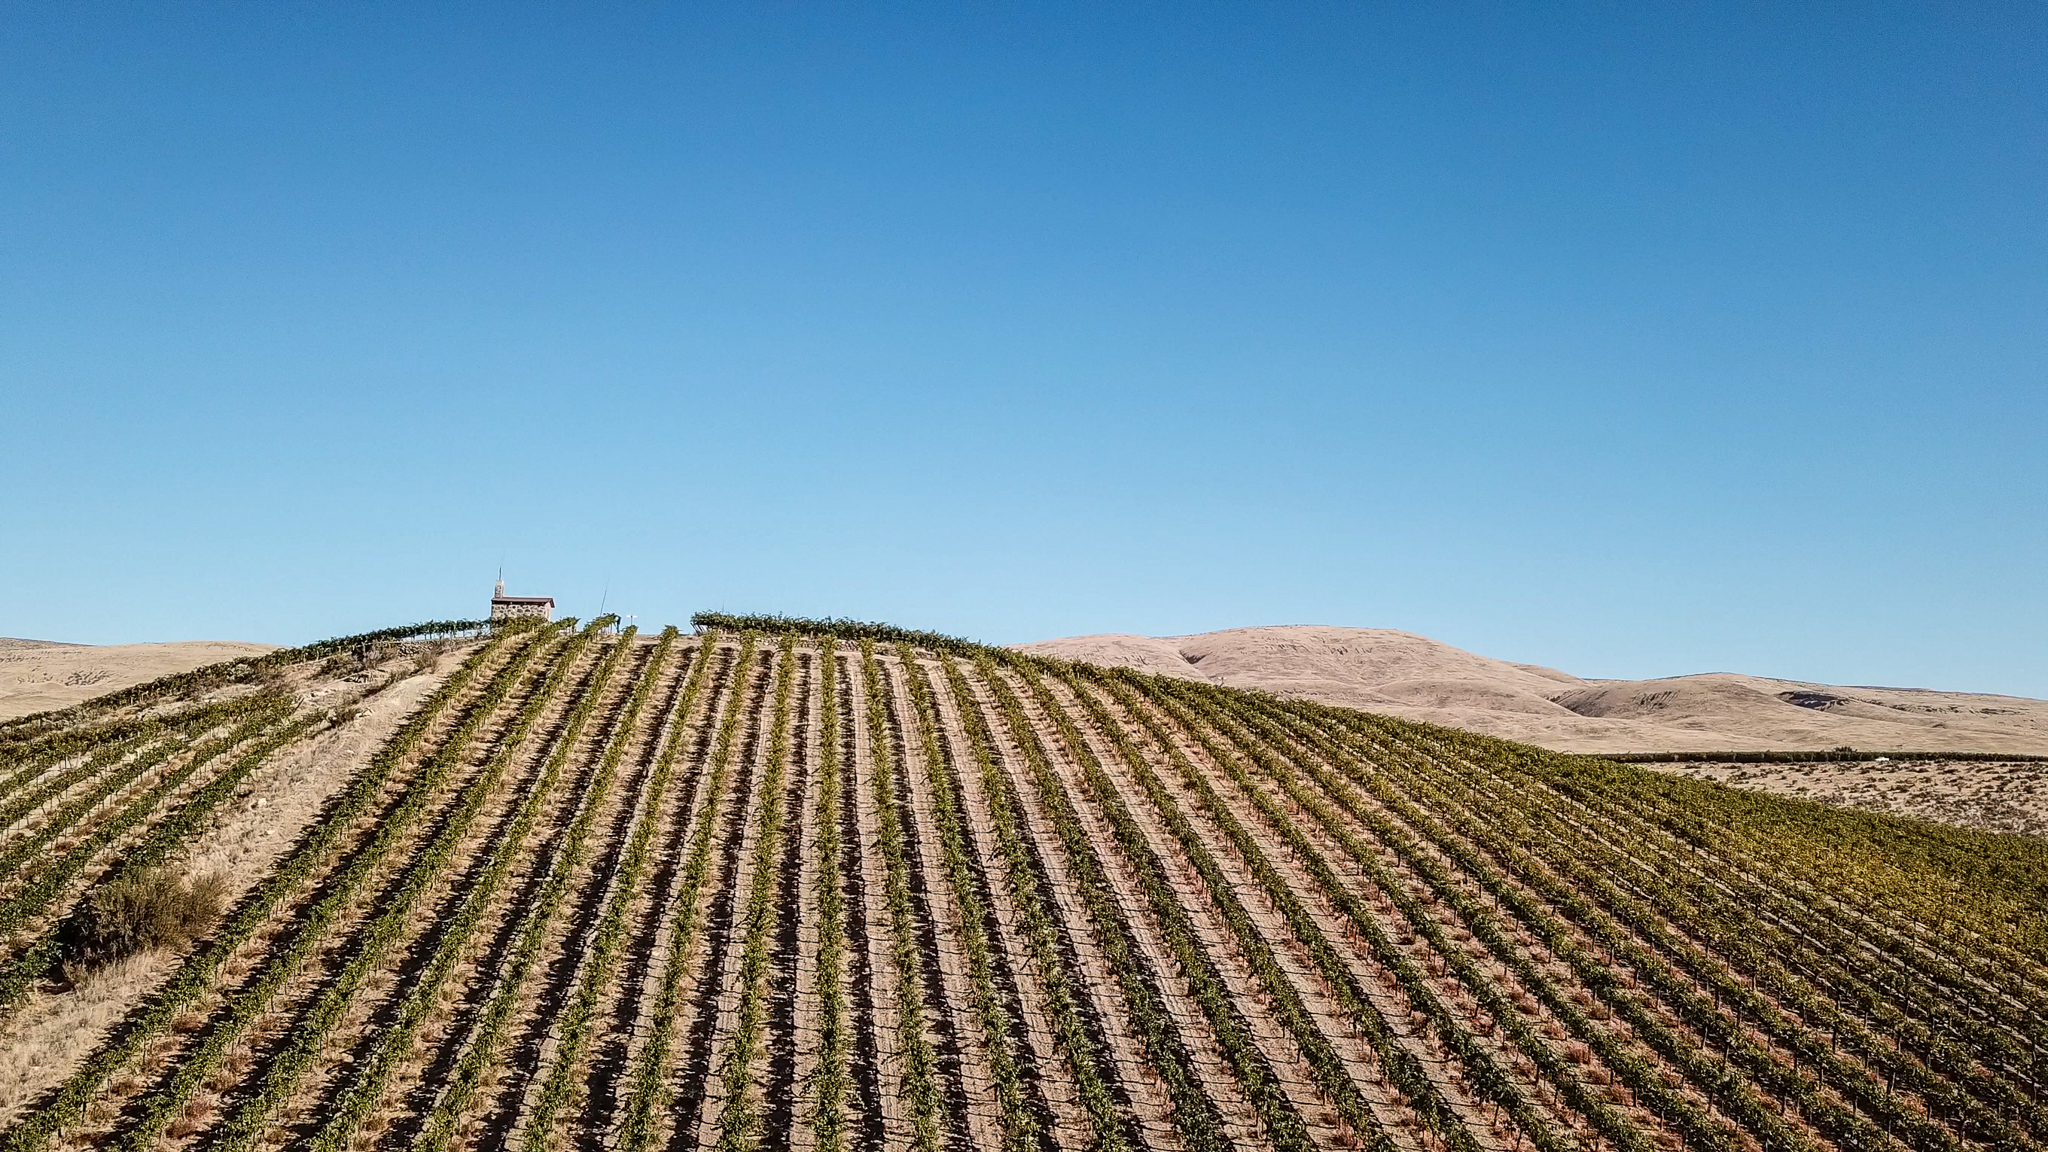 Neat rows of grape vines lead up a hill, with a small stone chapel at the top. There are tan, rolling hills in the background and a bright blue sky above.